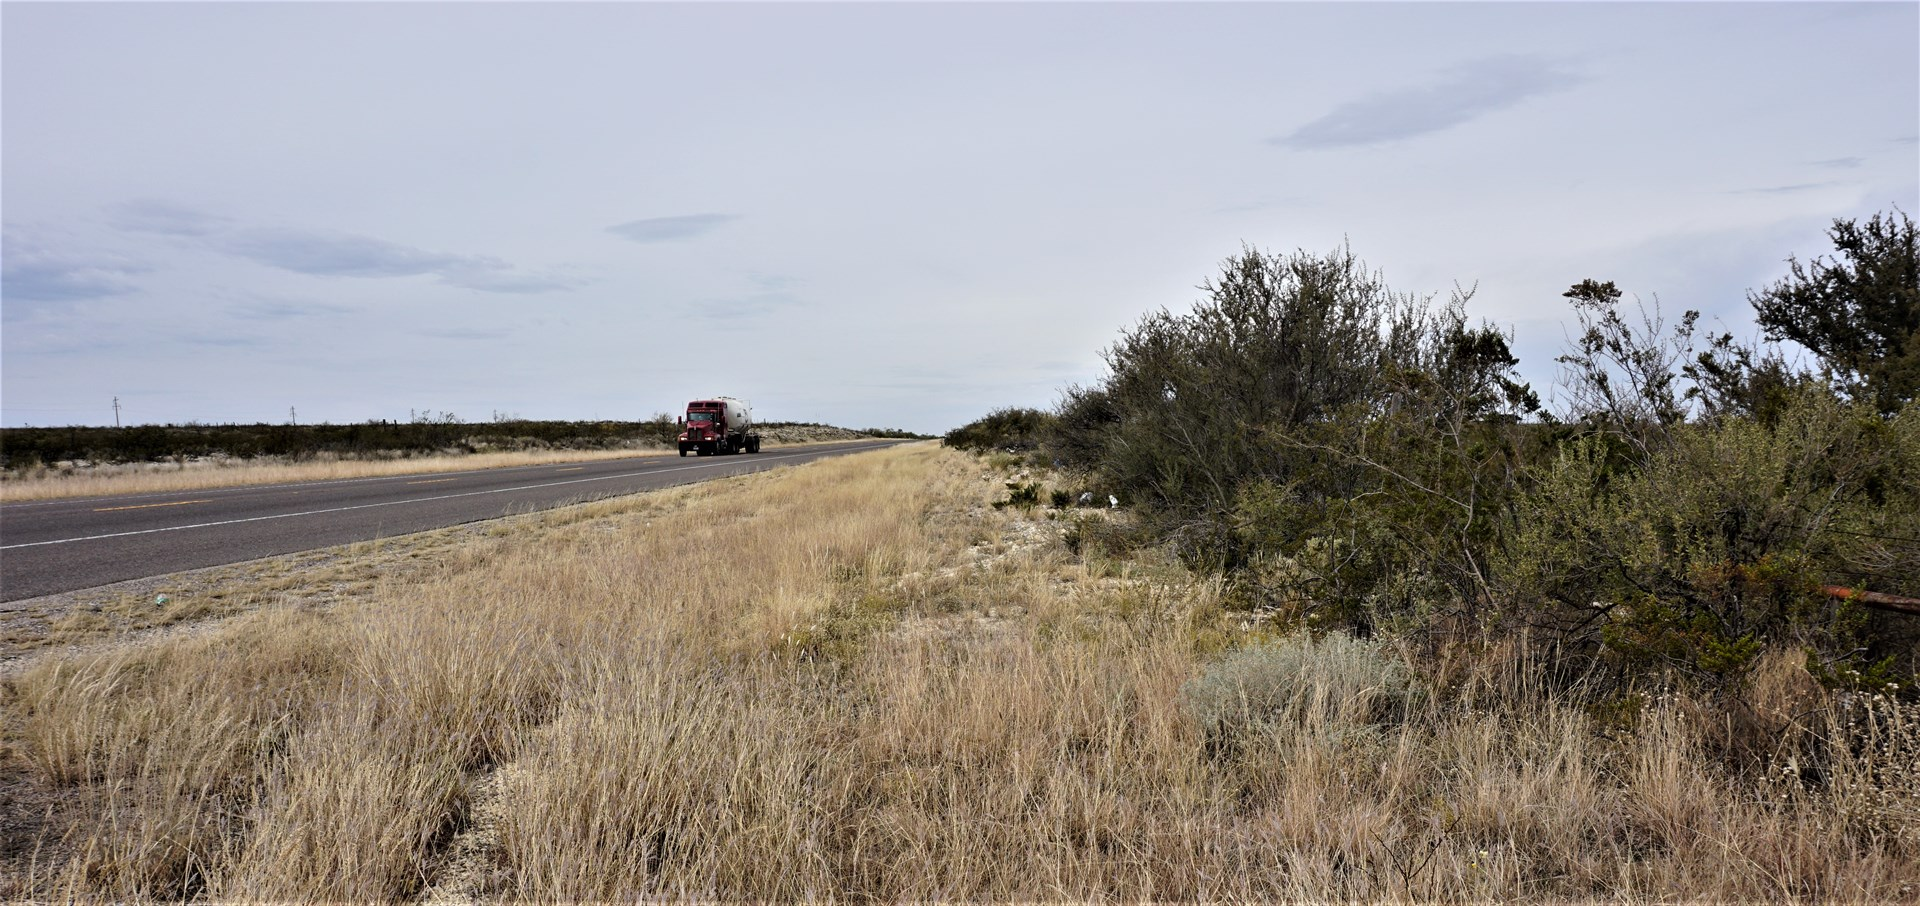 7.66 ACRES LAND NW OF FORT STOCKTON, TX FOR SALE